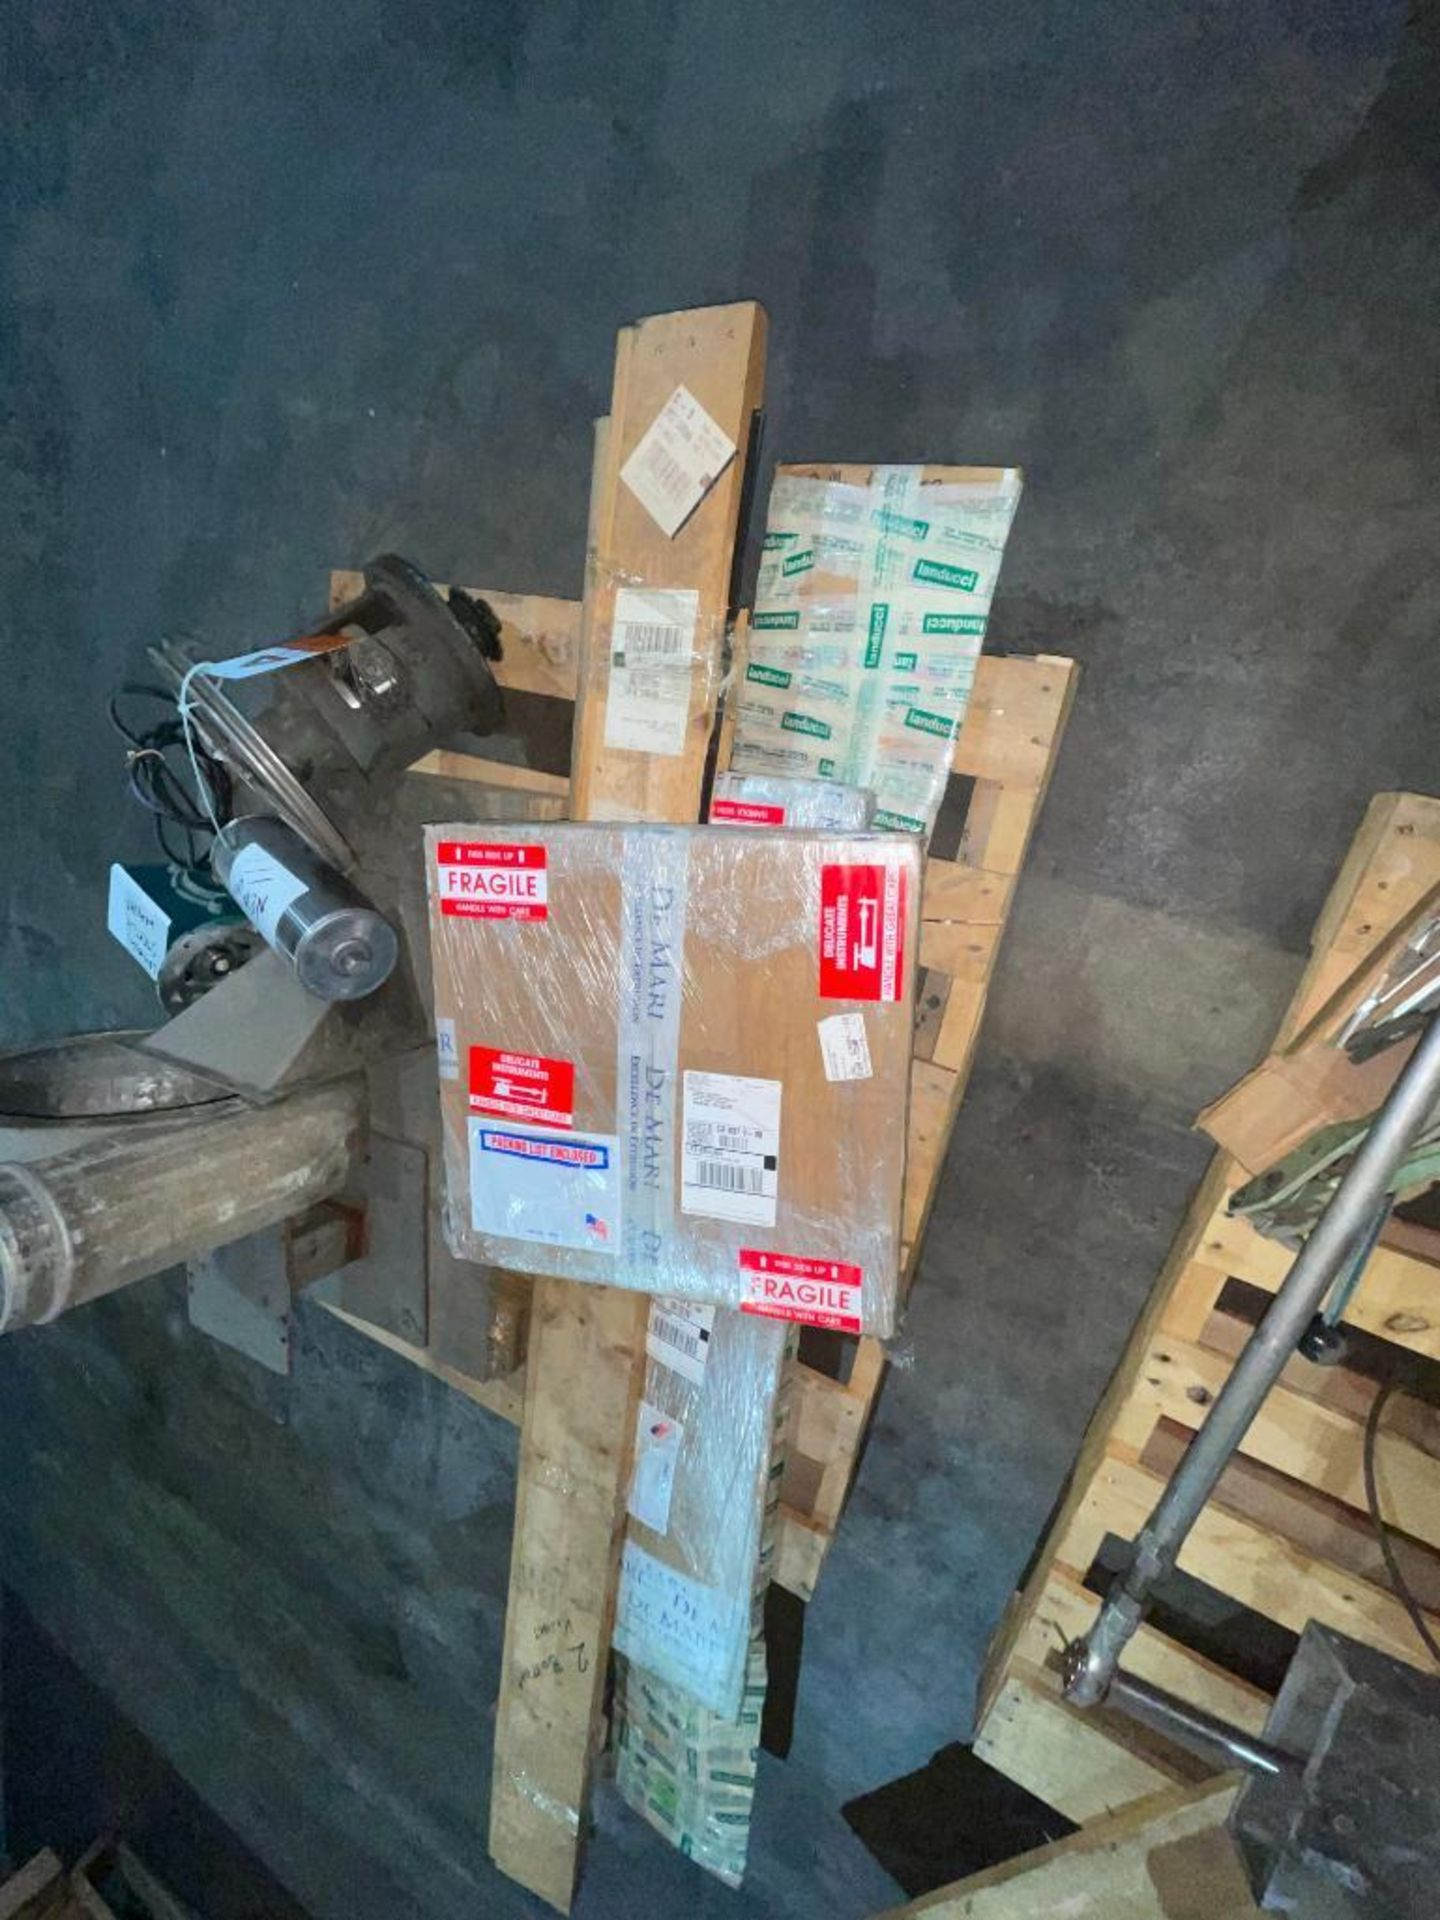 pallet of new and rebuilt knives - Image 7 of 7